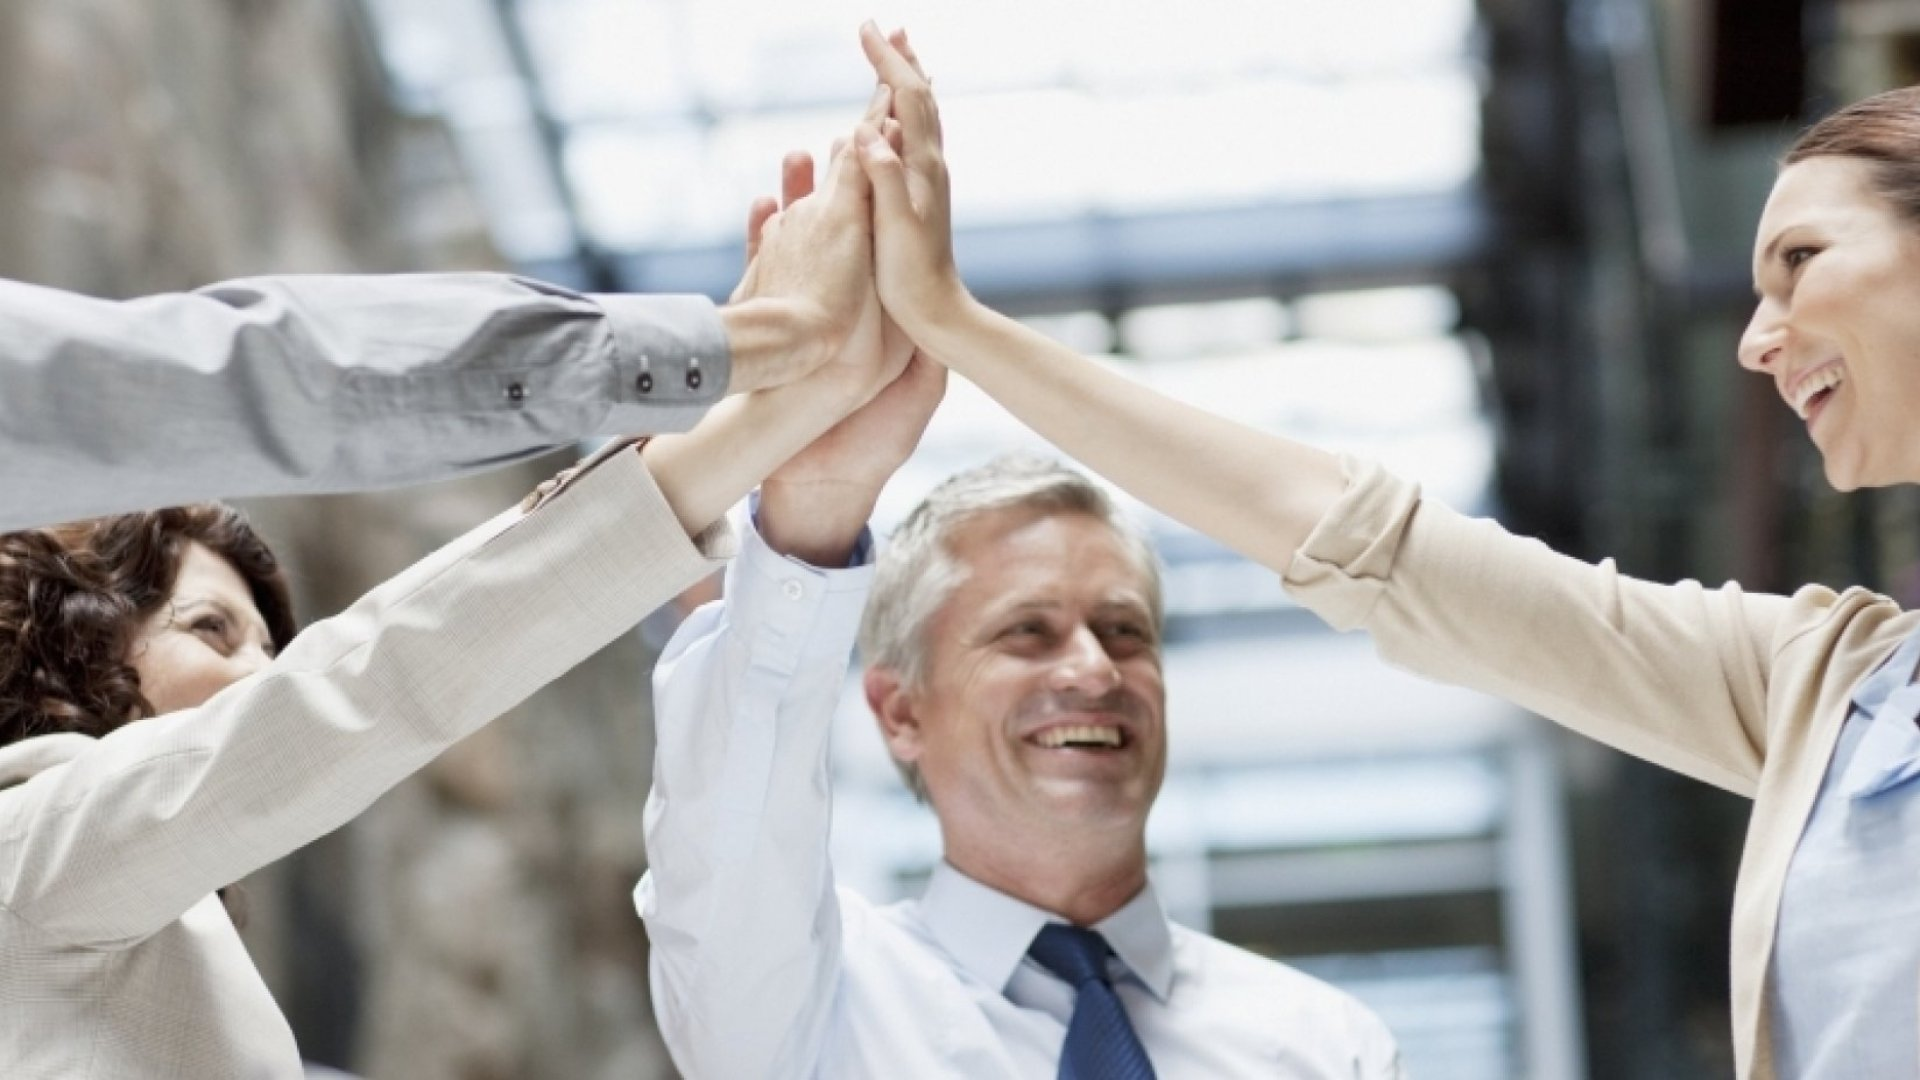 25 Tips to Hyper Motivate and Inspire Your Team